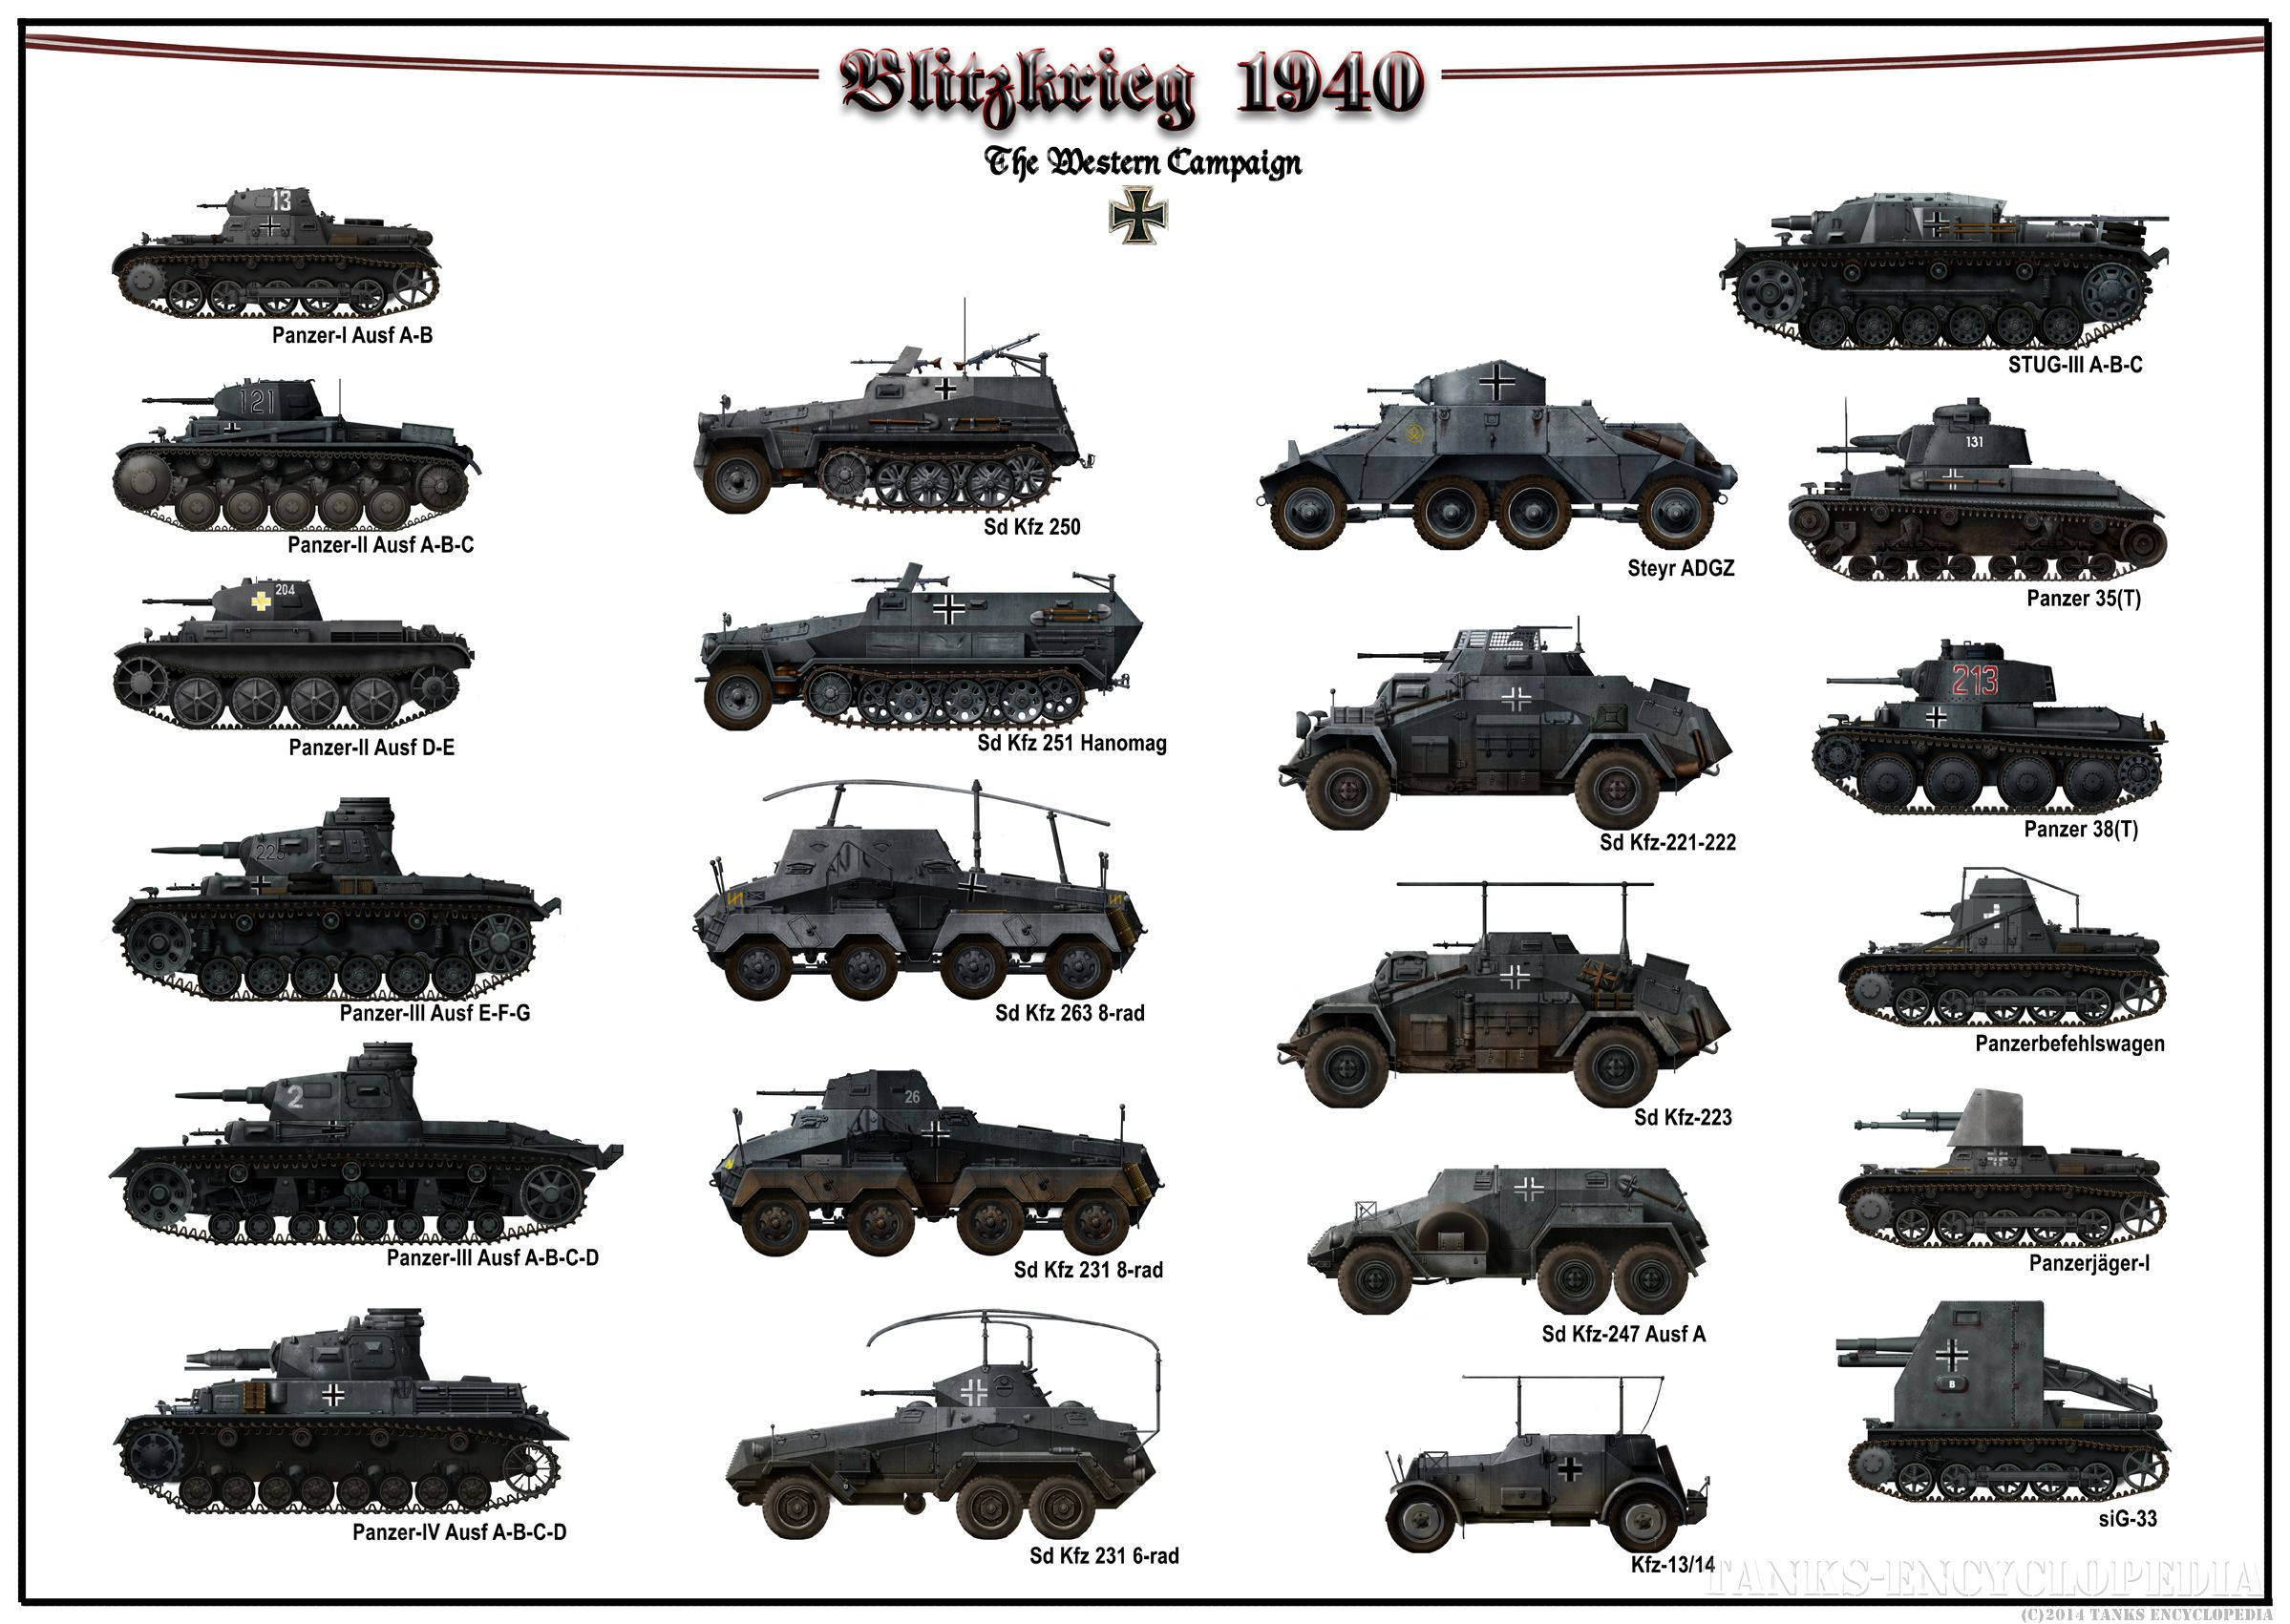 blitzkrieg tactics proved efficient for german military The point is that wilson's operation was much like the blitzkrieg in that it mainly was to penetrate the lines and disrupt rear areas, leaving the front line troops without supplies, sound communication and support, the point of blitzkrieg tactics or the wwi infiltration tactics practiced by the german's in 1918.